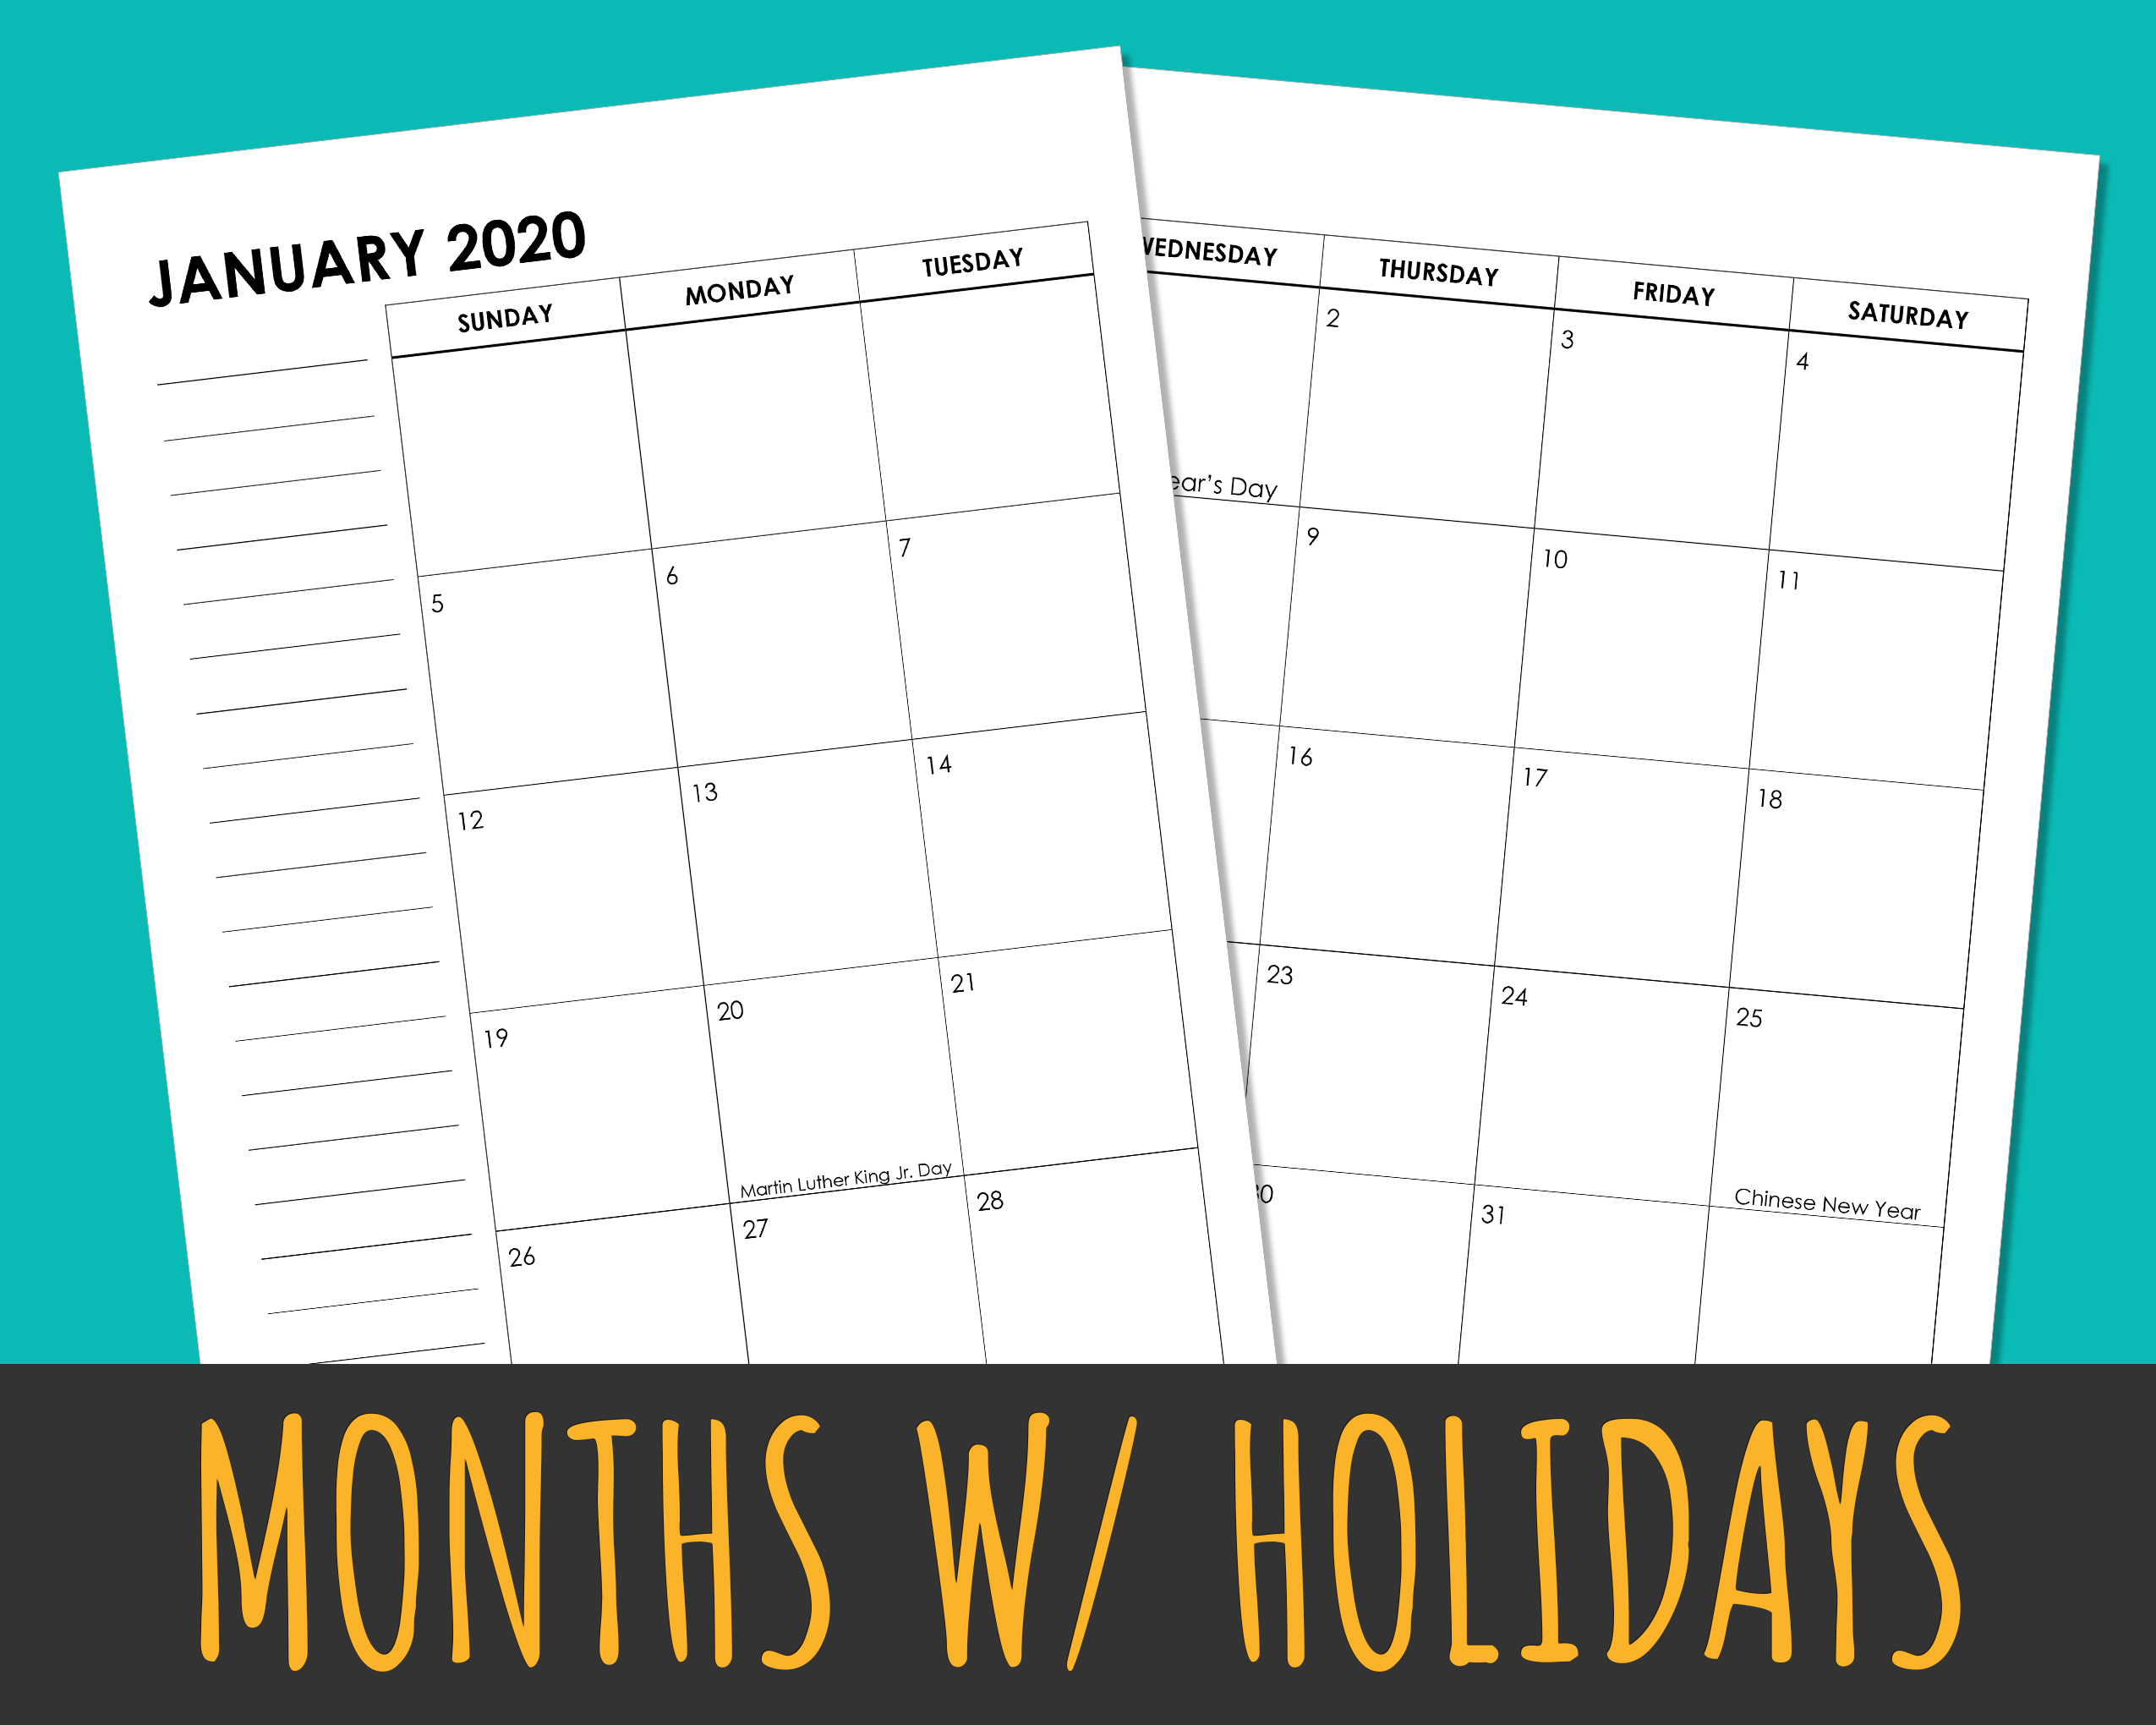 Monthly Calendar with US Holidays